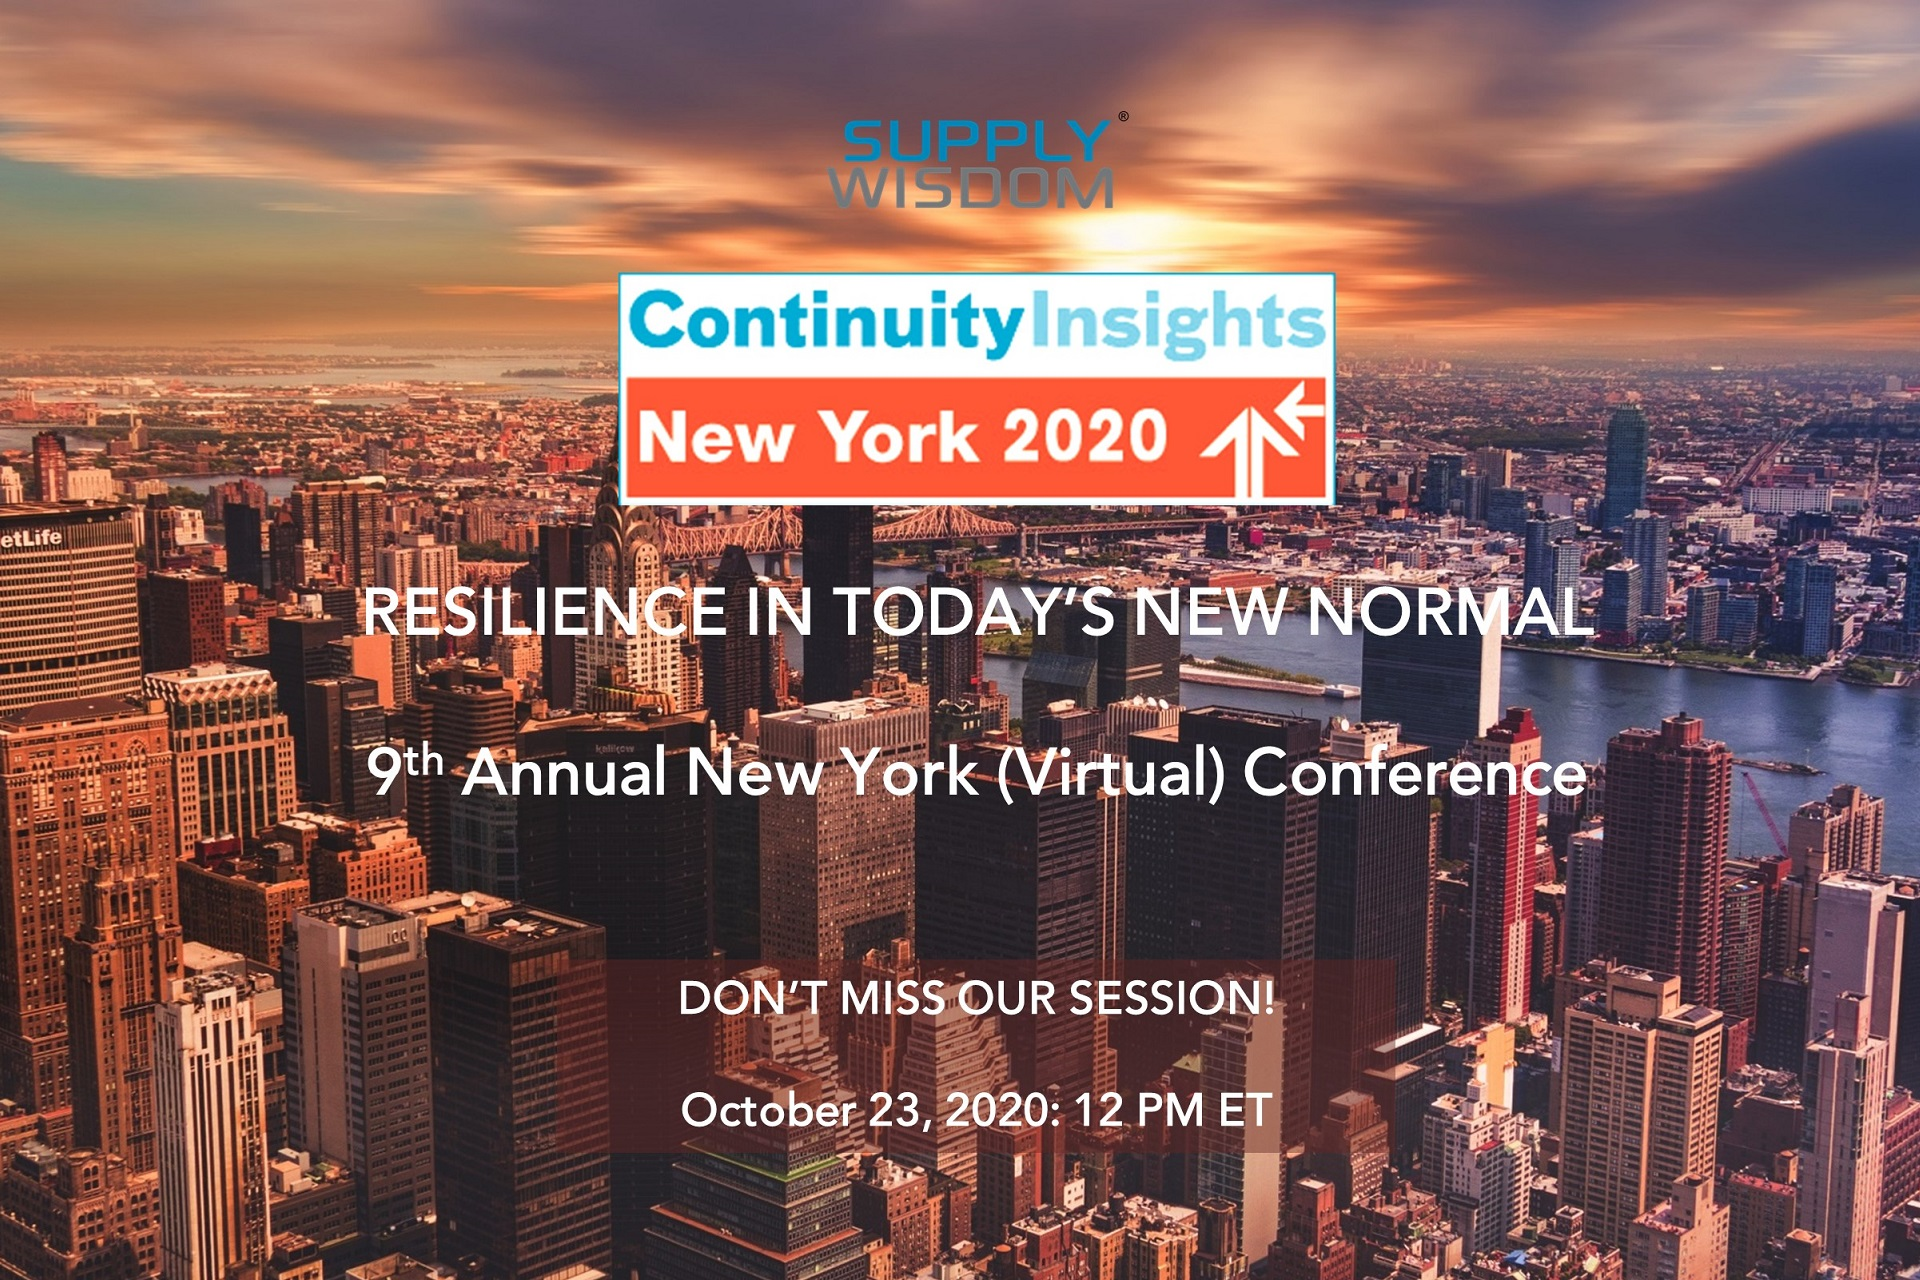 Supply Wisdom at Continuity Insights Virtual Conference